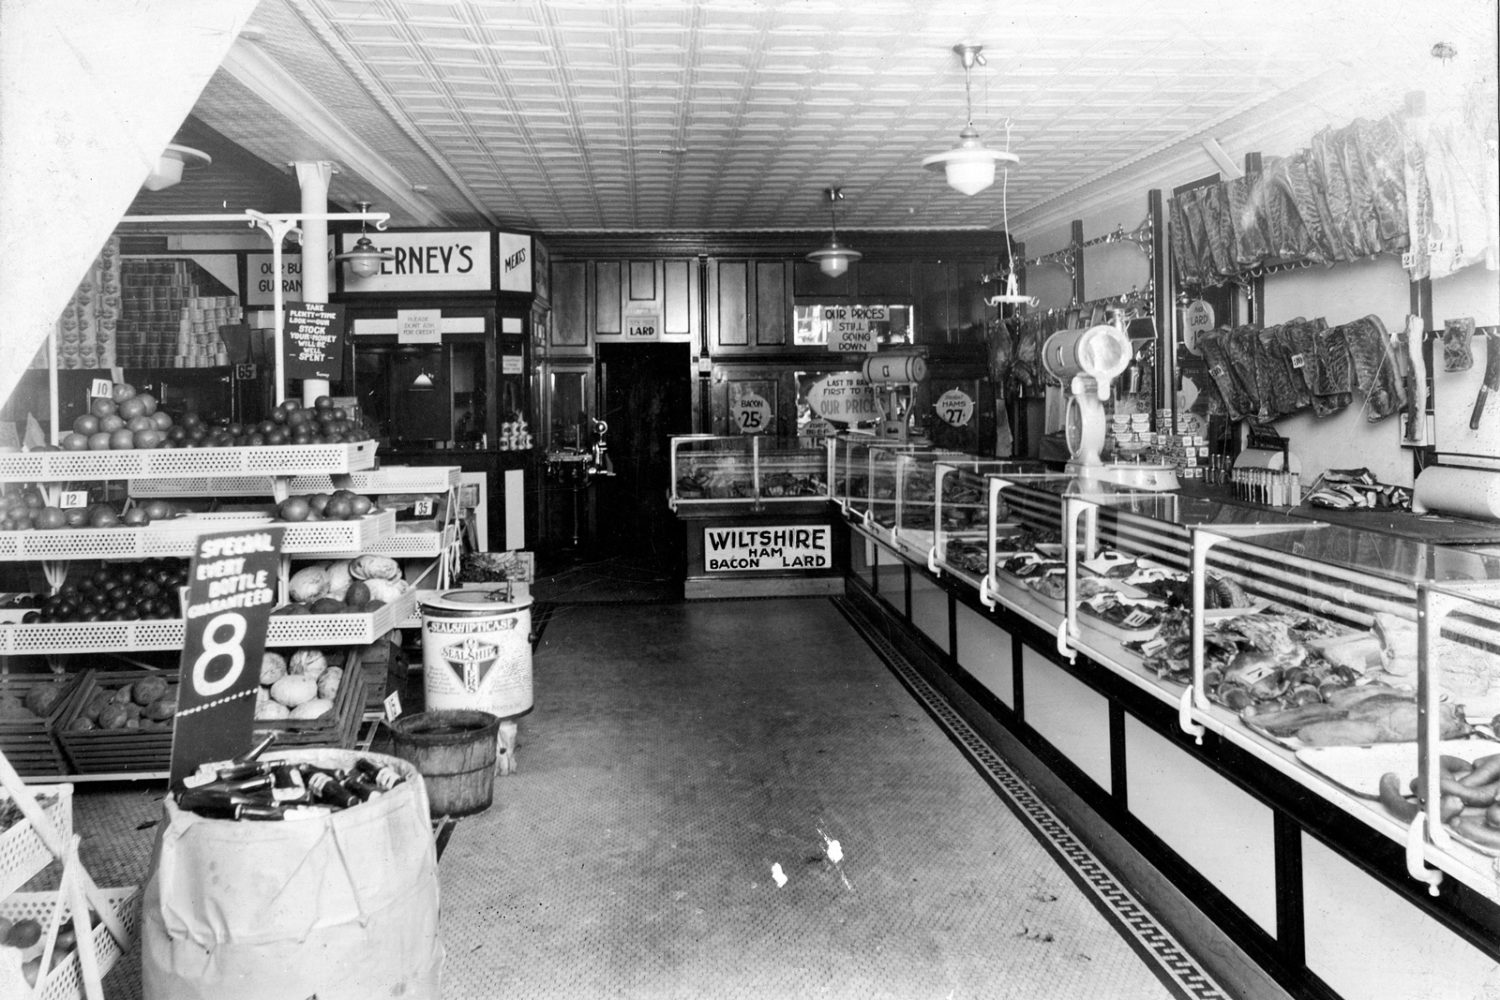 Tierney Market 312 North Street in Rochester, New York 1930